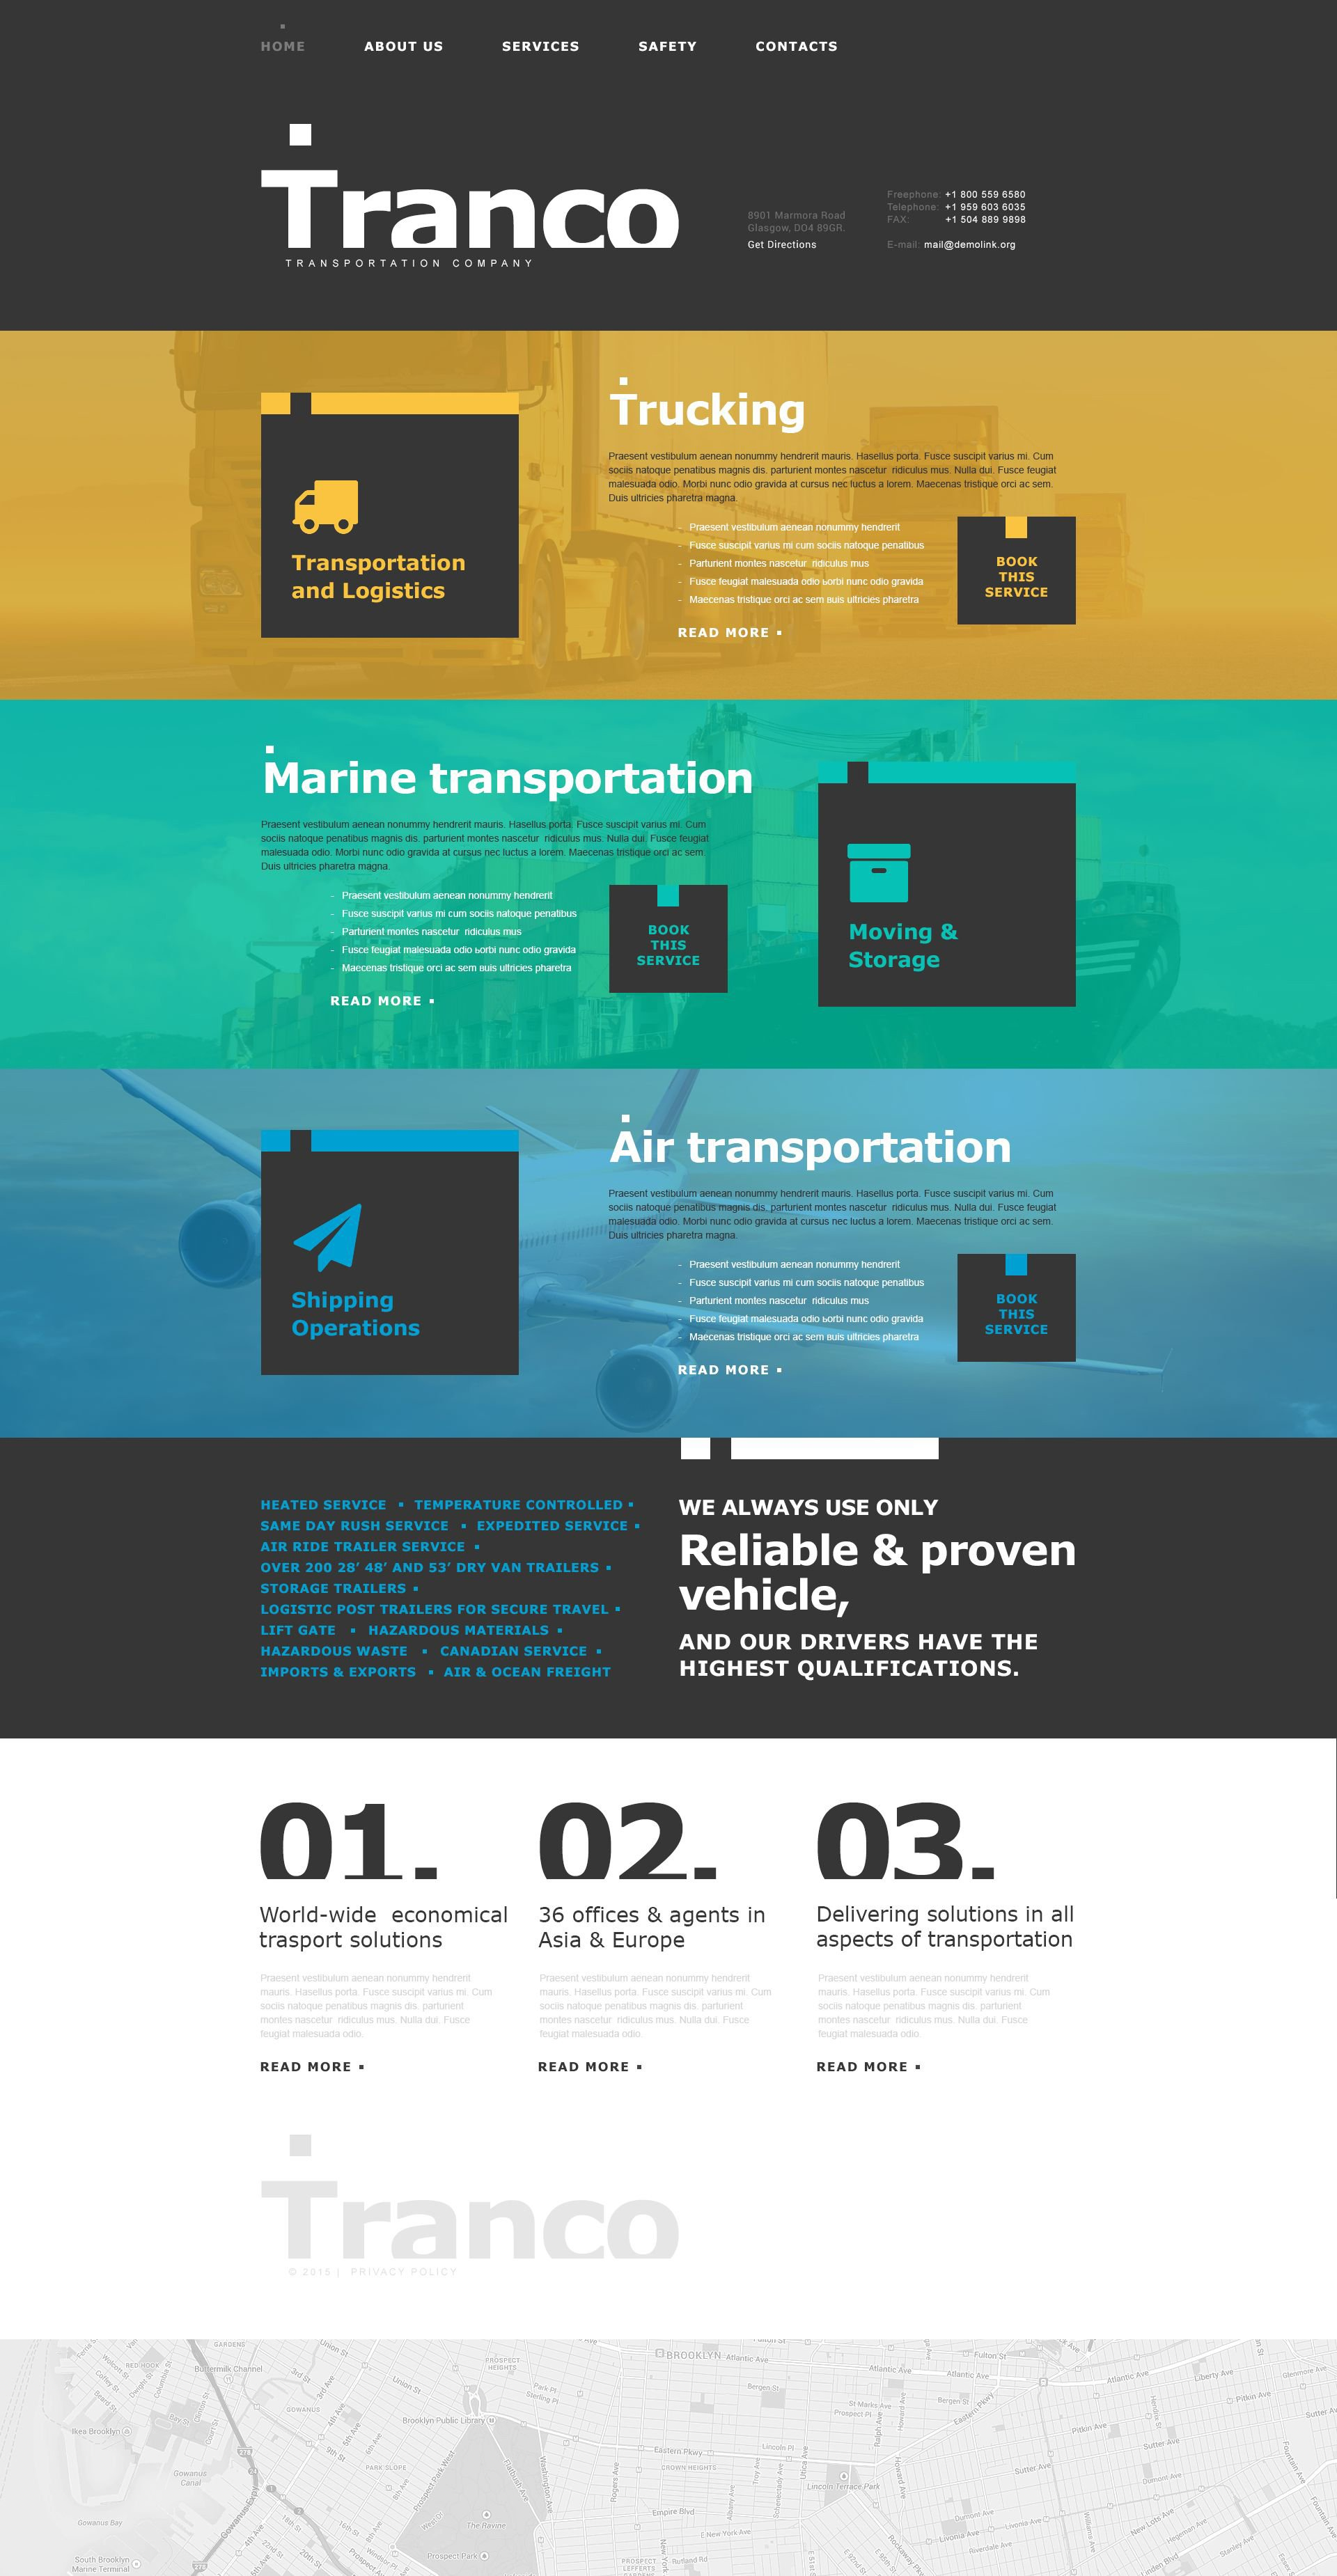 The Tranco Transportation Transport Muse Templates Design 53563, one of the best Muse templates of its kind (transportation, most popular), also known as Tranco transportation transport Muse template, fast Muse template, reliability Muse template, safety Muse template, express Muse template, exportation Muse template, trucking Muse template, delivery Muse template, work Muse template, team Muse template, profile Muse template, support Muse template, customer Muse template, clients solutions Muse template, cars Muse template, cargo Muse template, services Muse template, shipment Muse template, rates Muse template, prices Muse template, offer Muse template, standards Muse template, vehicle Muse template, destination Muse template, trucking Muse template, sea Muse template, air and related with Tranco transportation transport, fast, reliability, safety, express, exportation, trucking, delivery, work, team, profile, support, customer, clients solutions, cars, cargo, services, shipment, rates, prices, offer, standards, vehicle, destination, trucking, sea, air, etc.